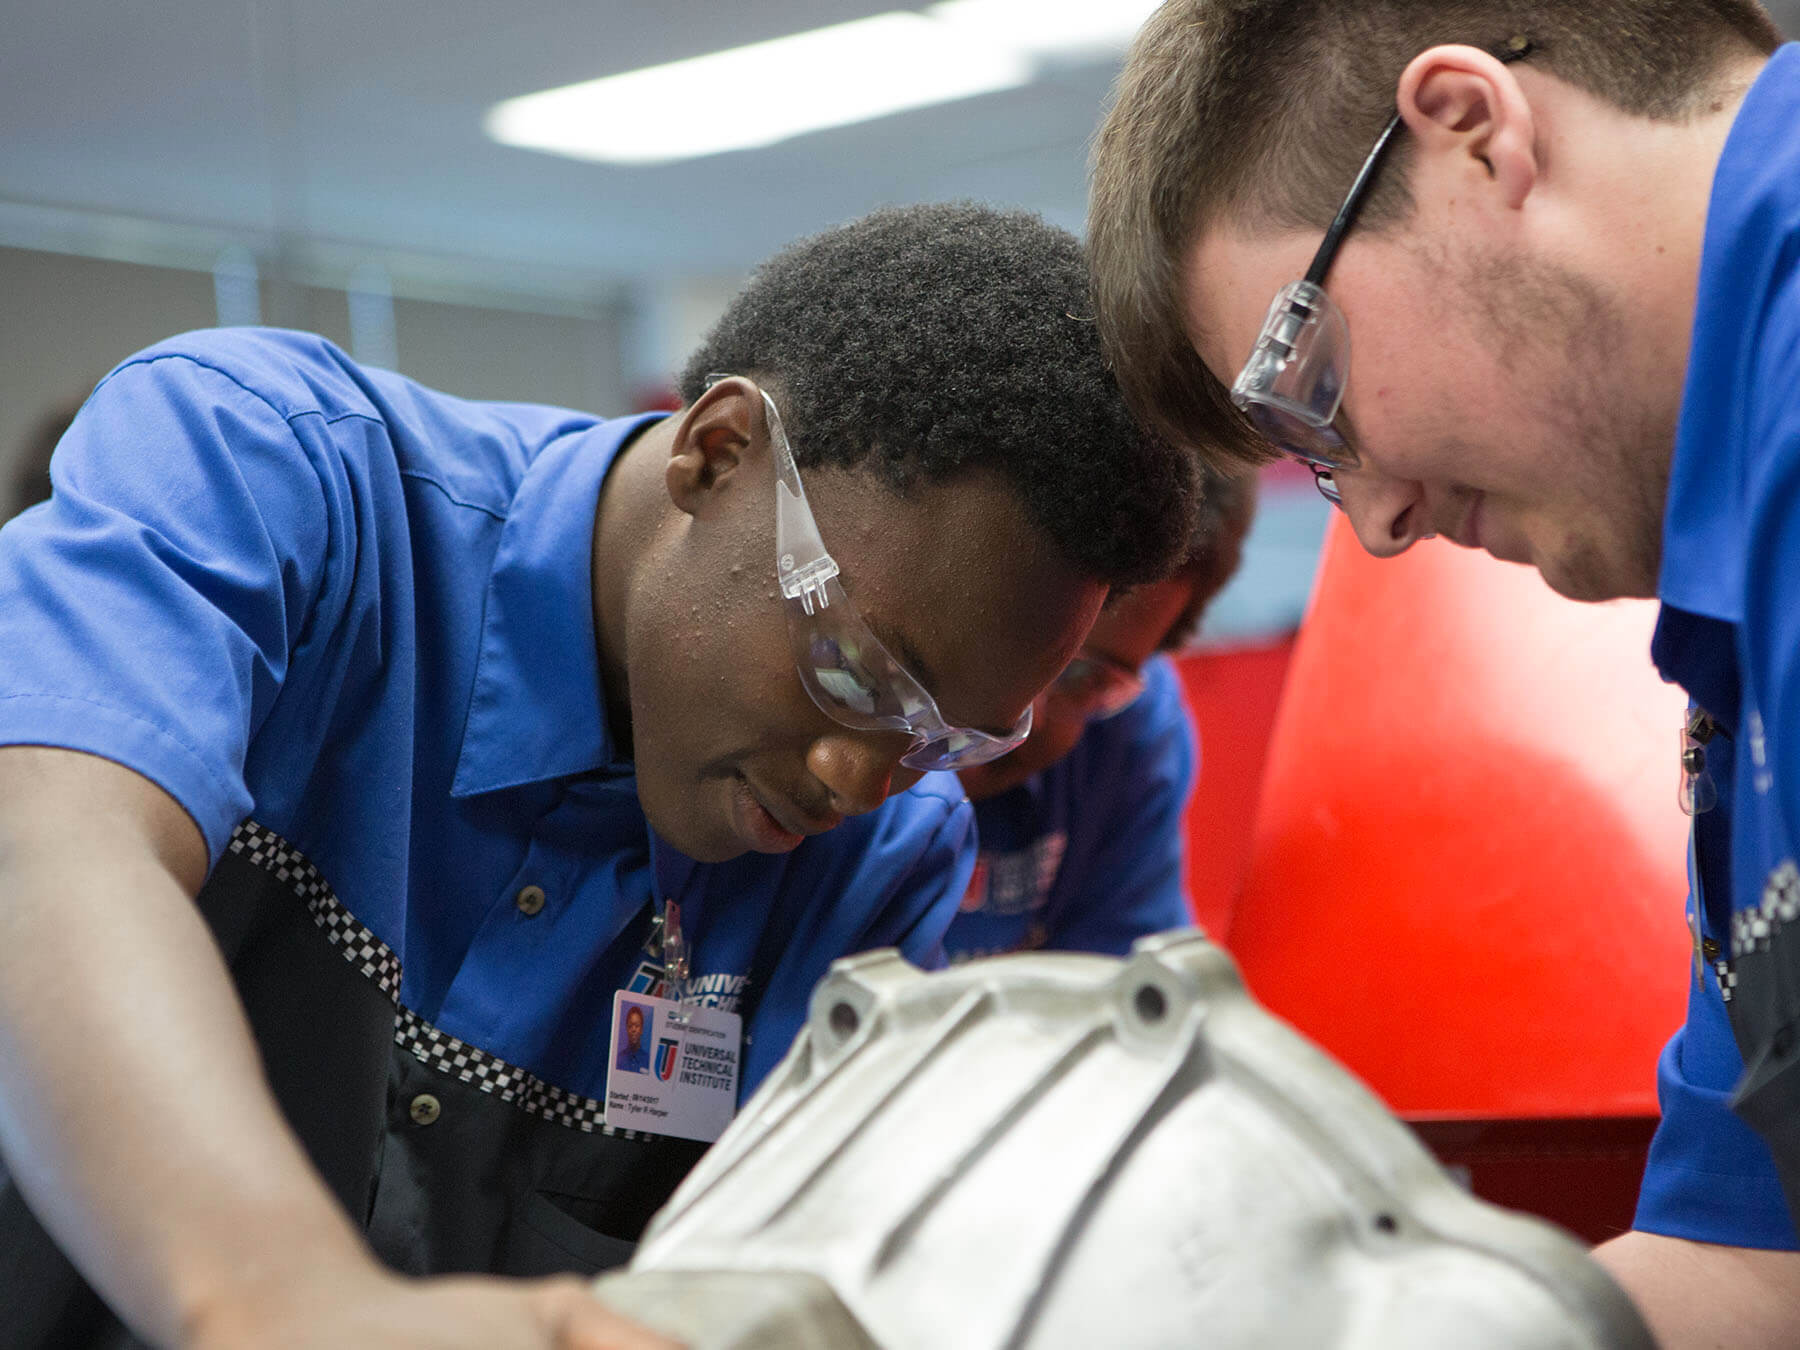 UTI students working on an engine